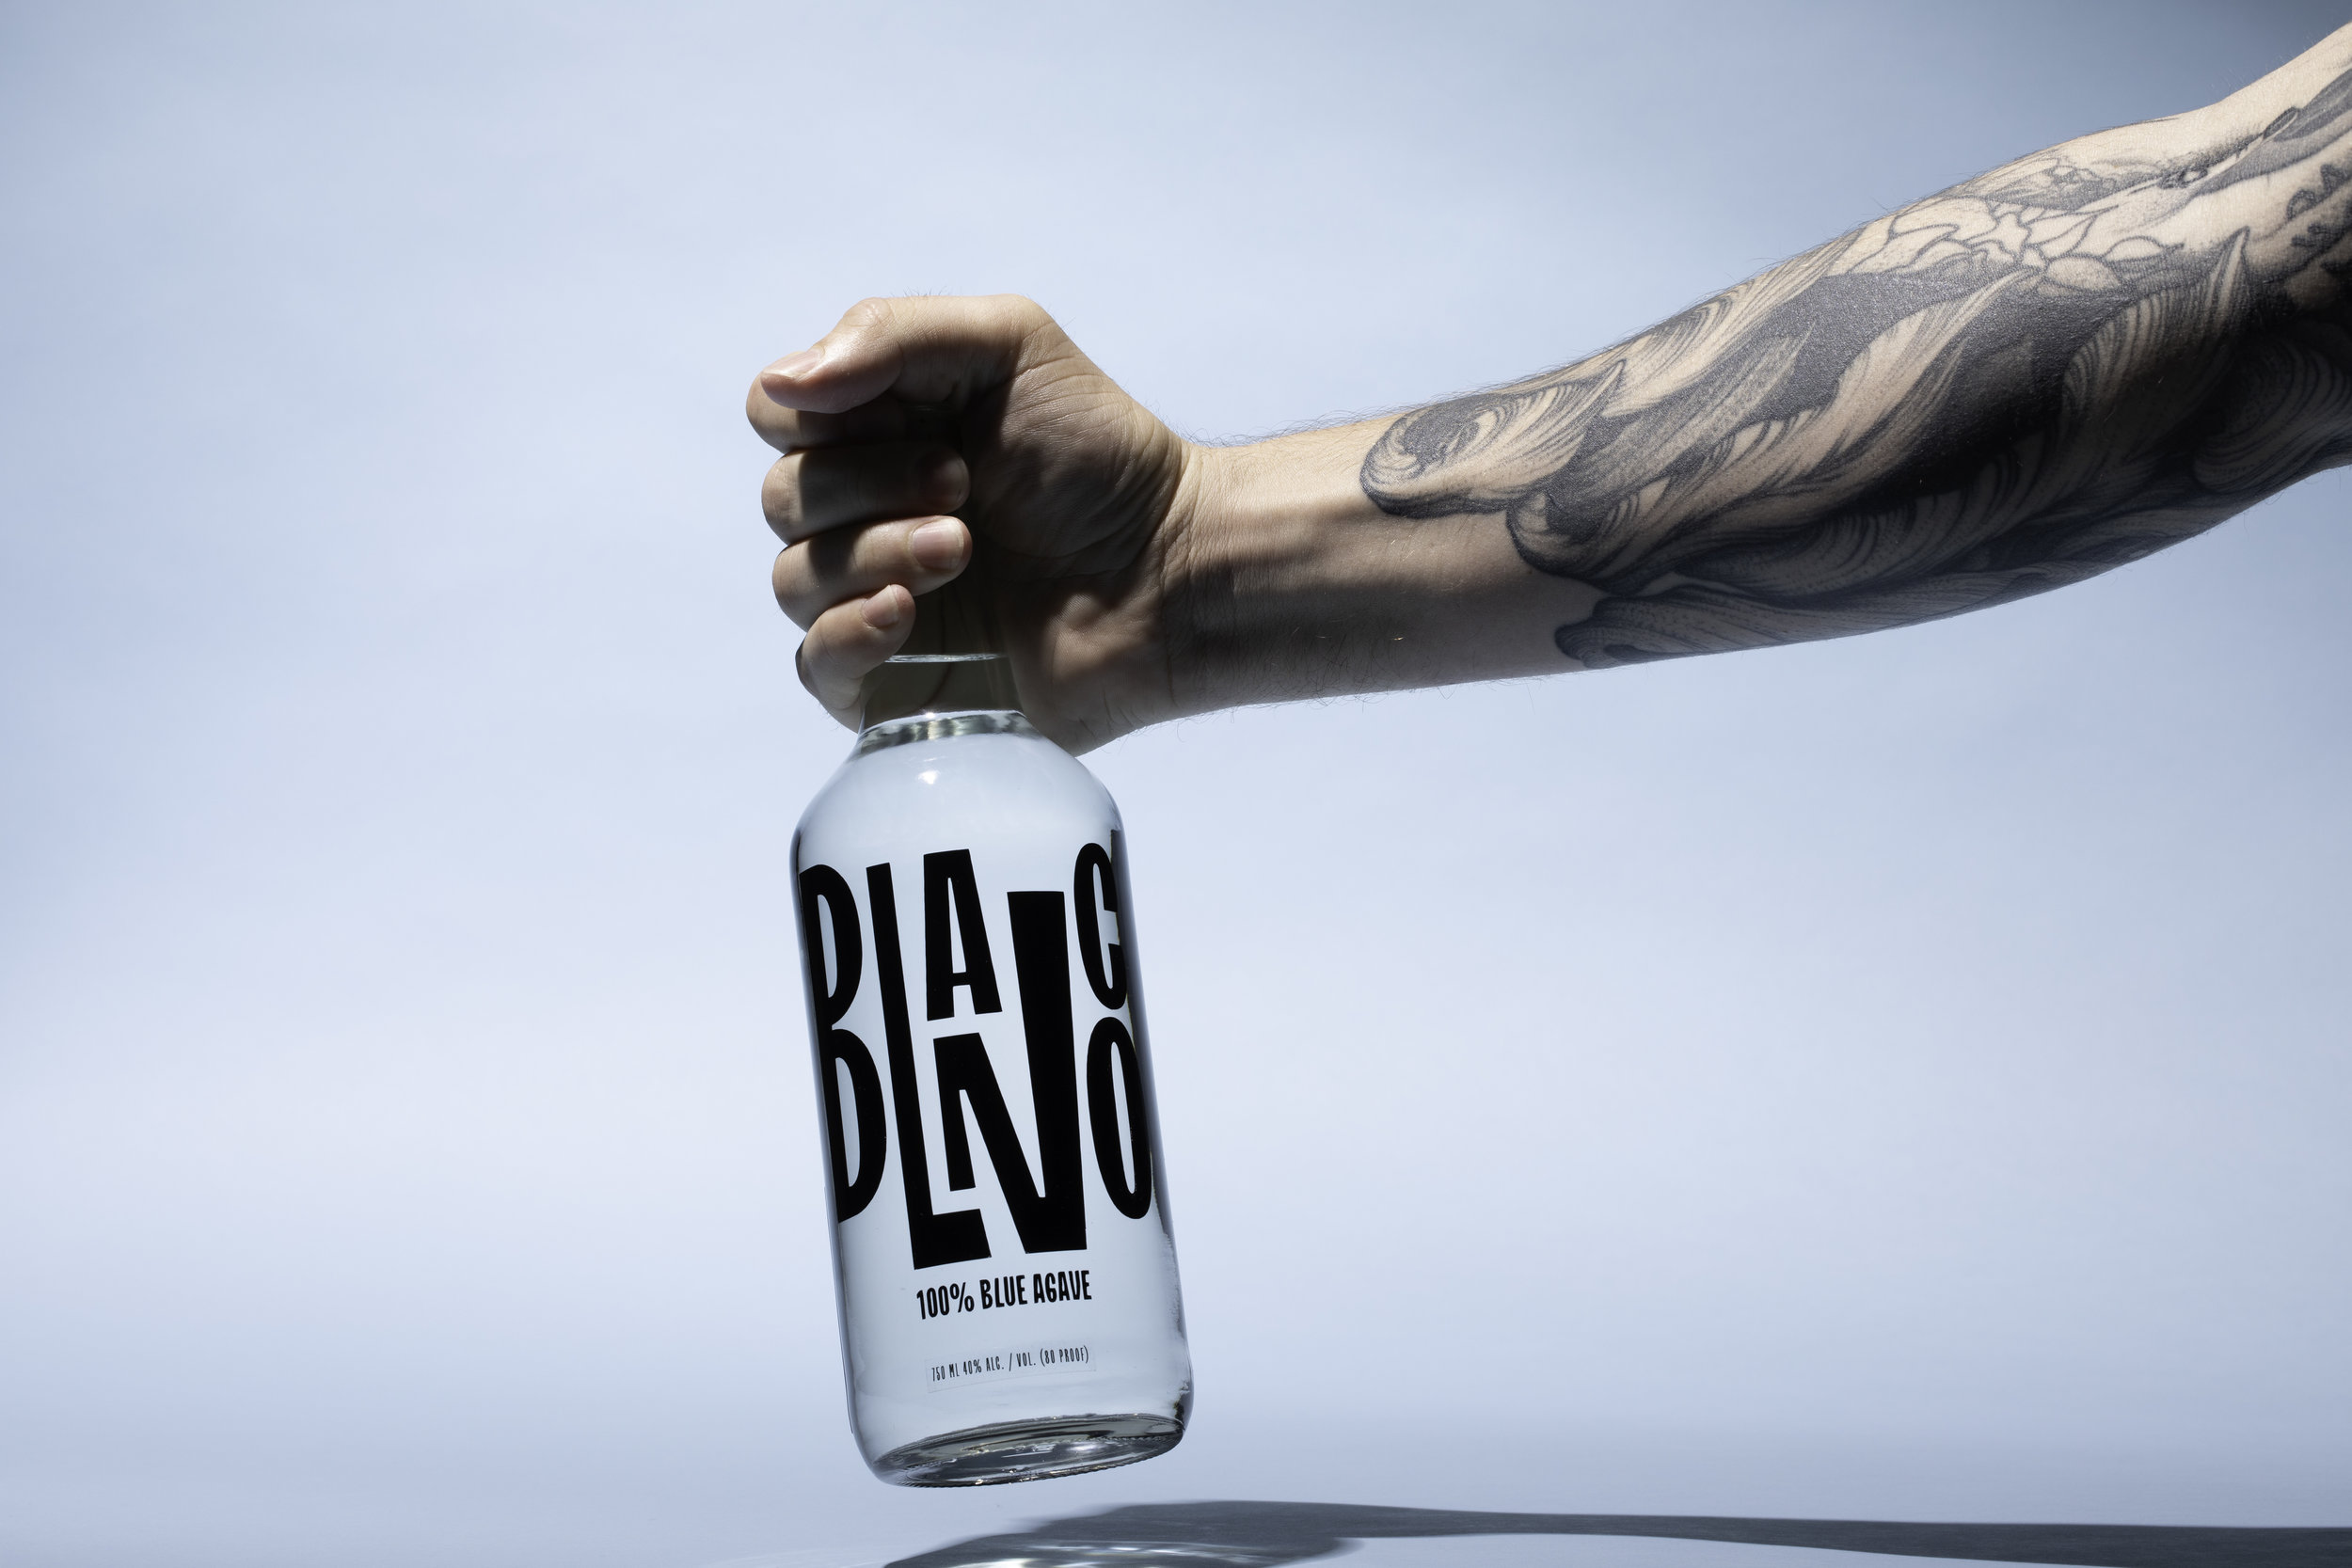 Blanco Tequila Bottle In hand with tattoo